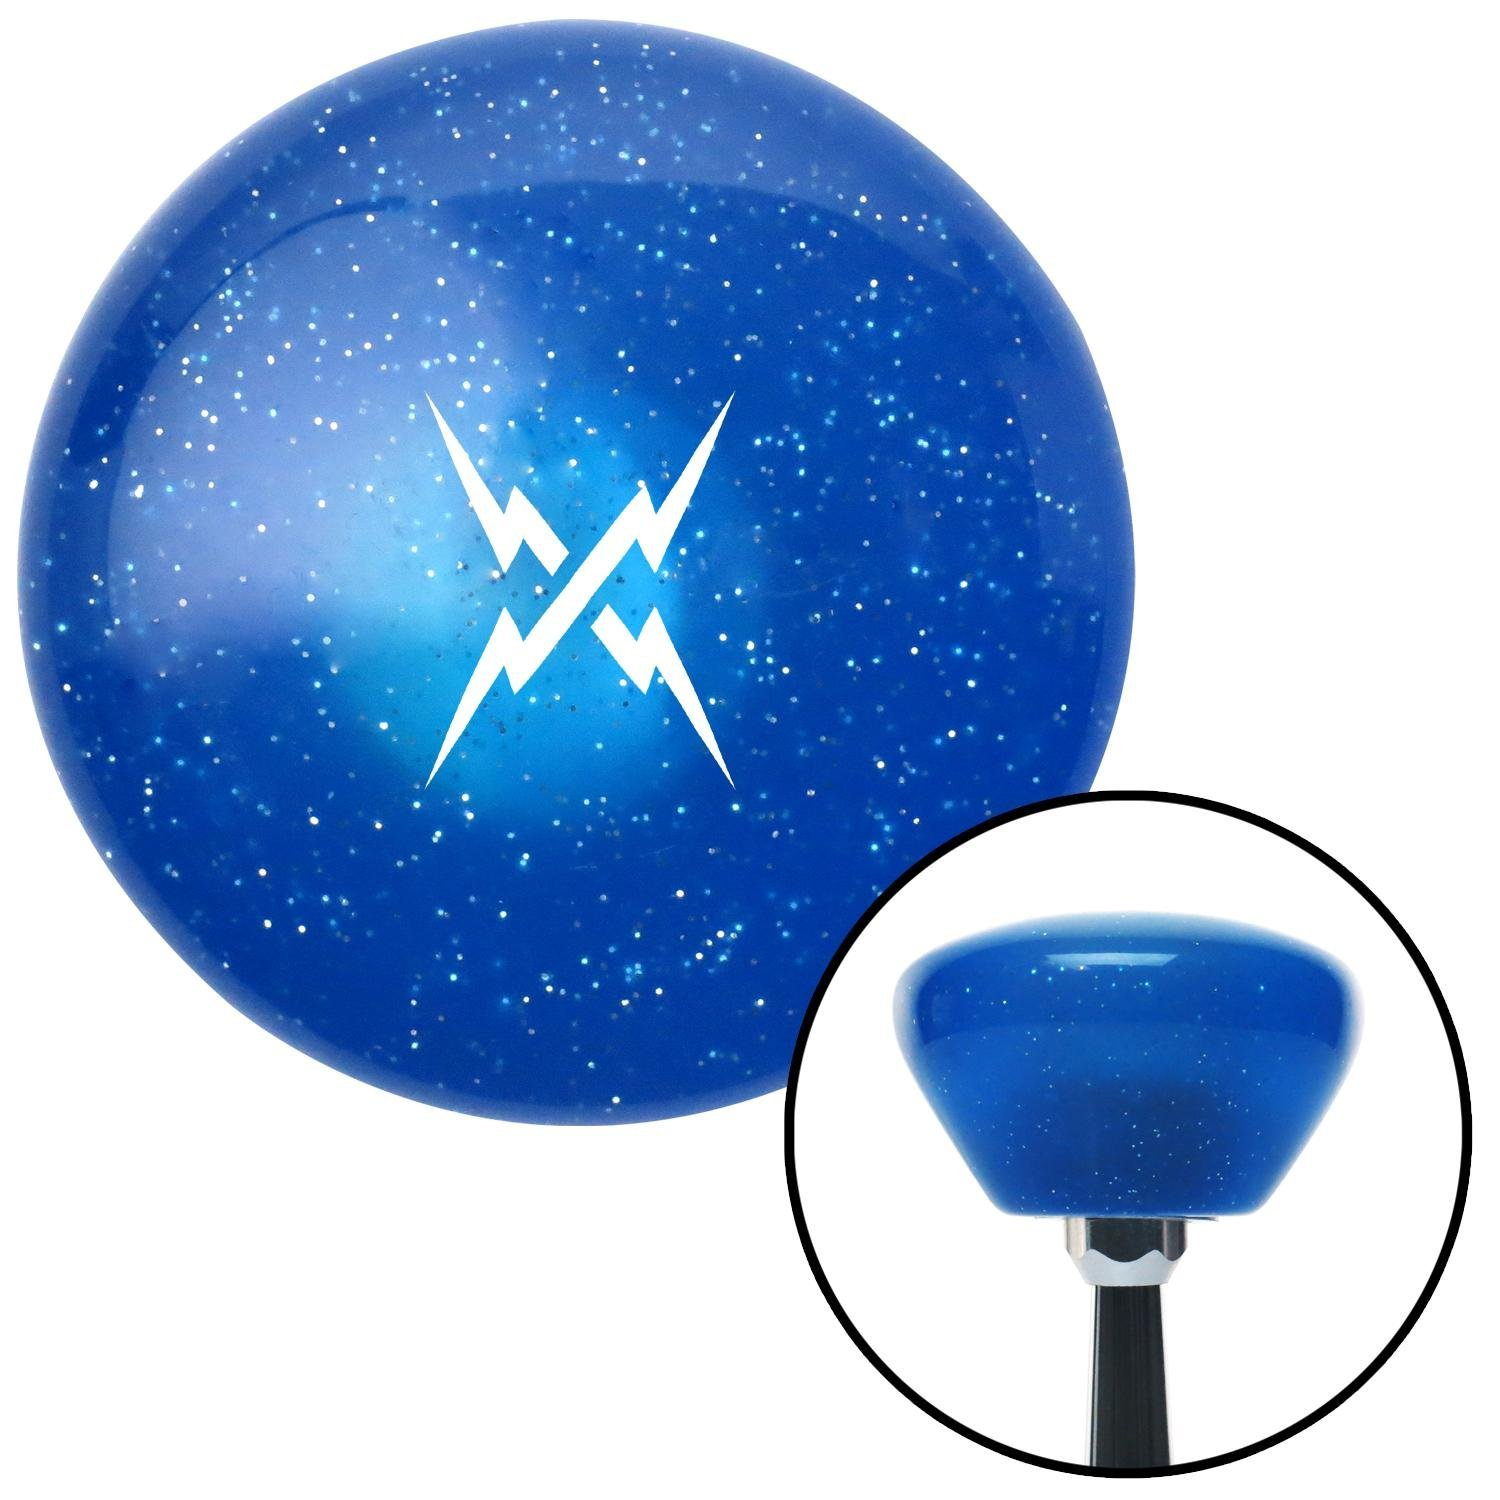 American Shifter 289791 Shift Knob White Lightning Crossed Blue Retro Metal Flake with M16 x 1.5 Insert